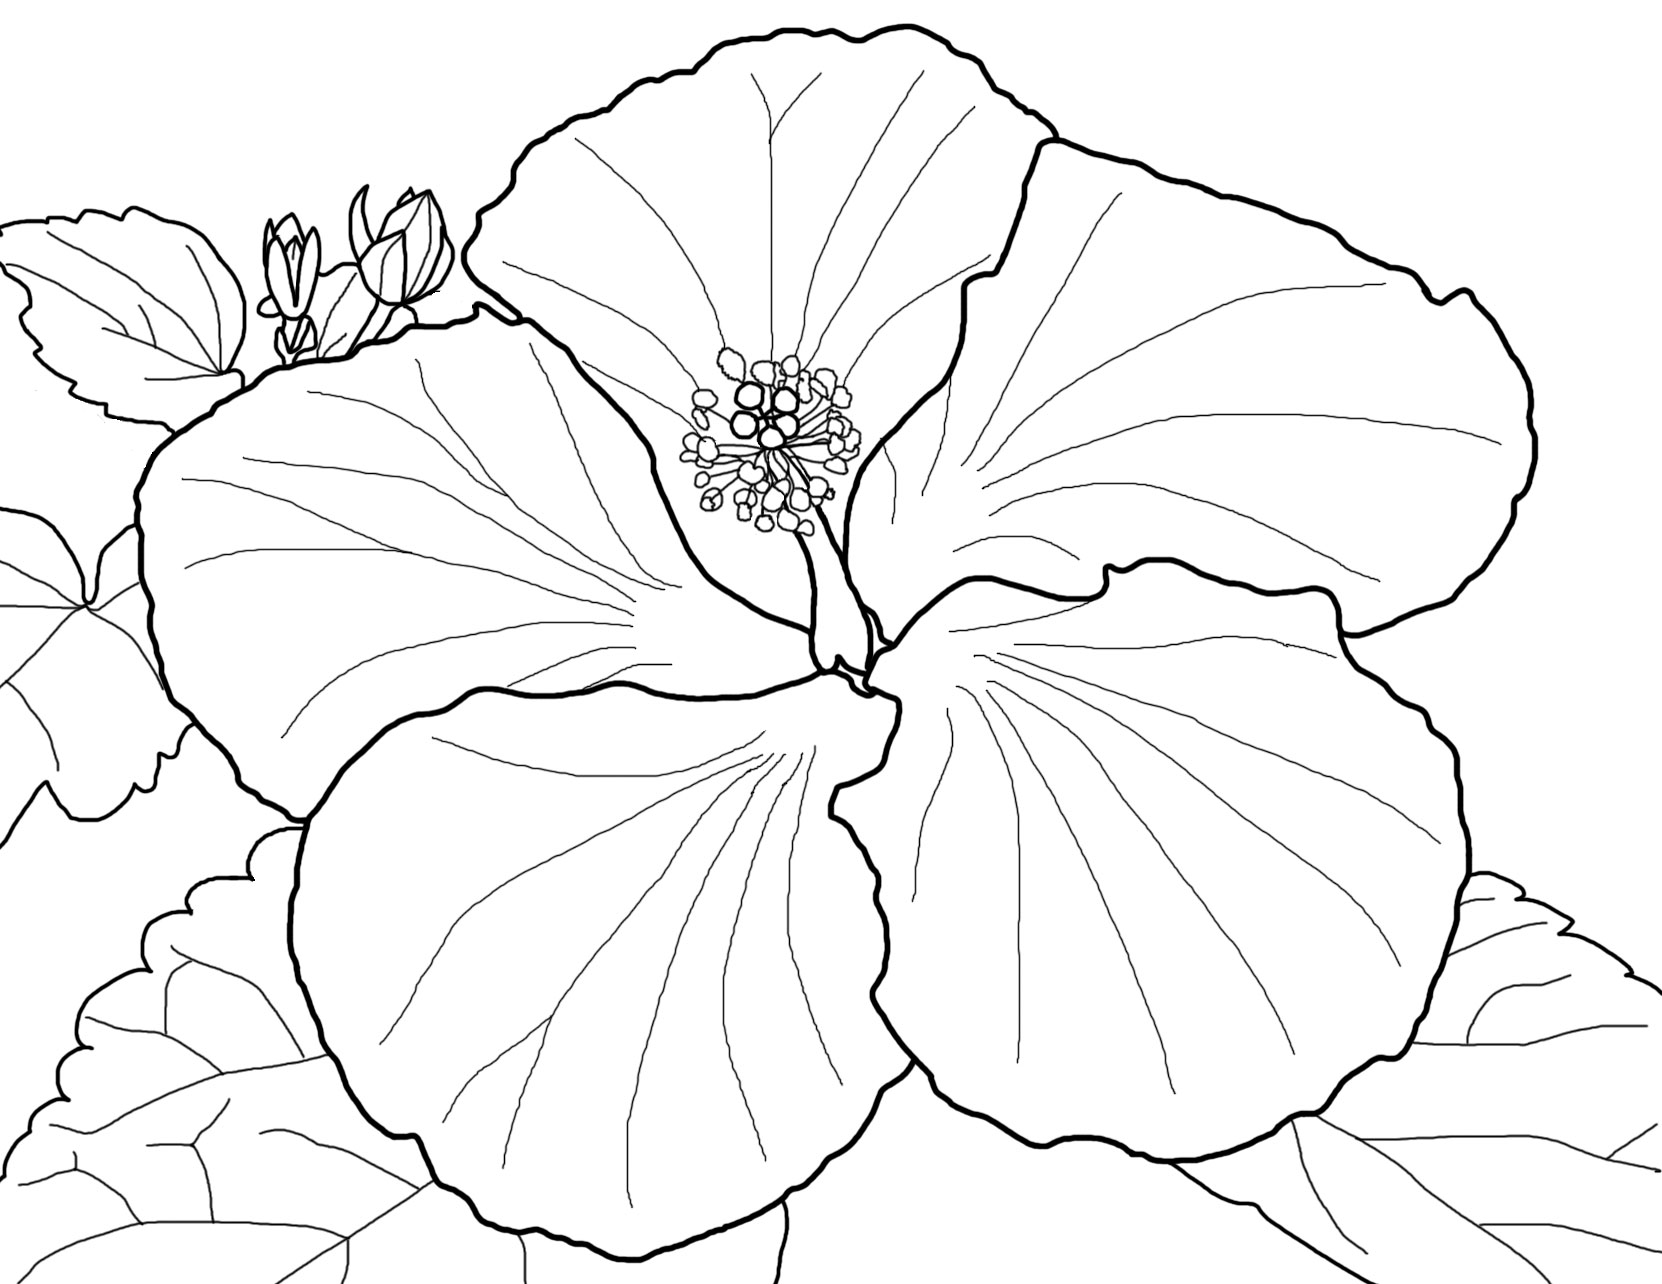 coloring pages of a flower spring flowers coloring page beautiful blossoms flower coloring of pages a